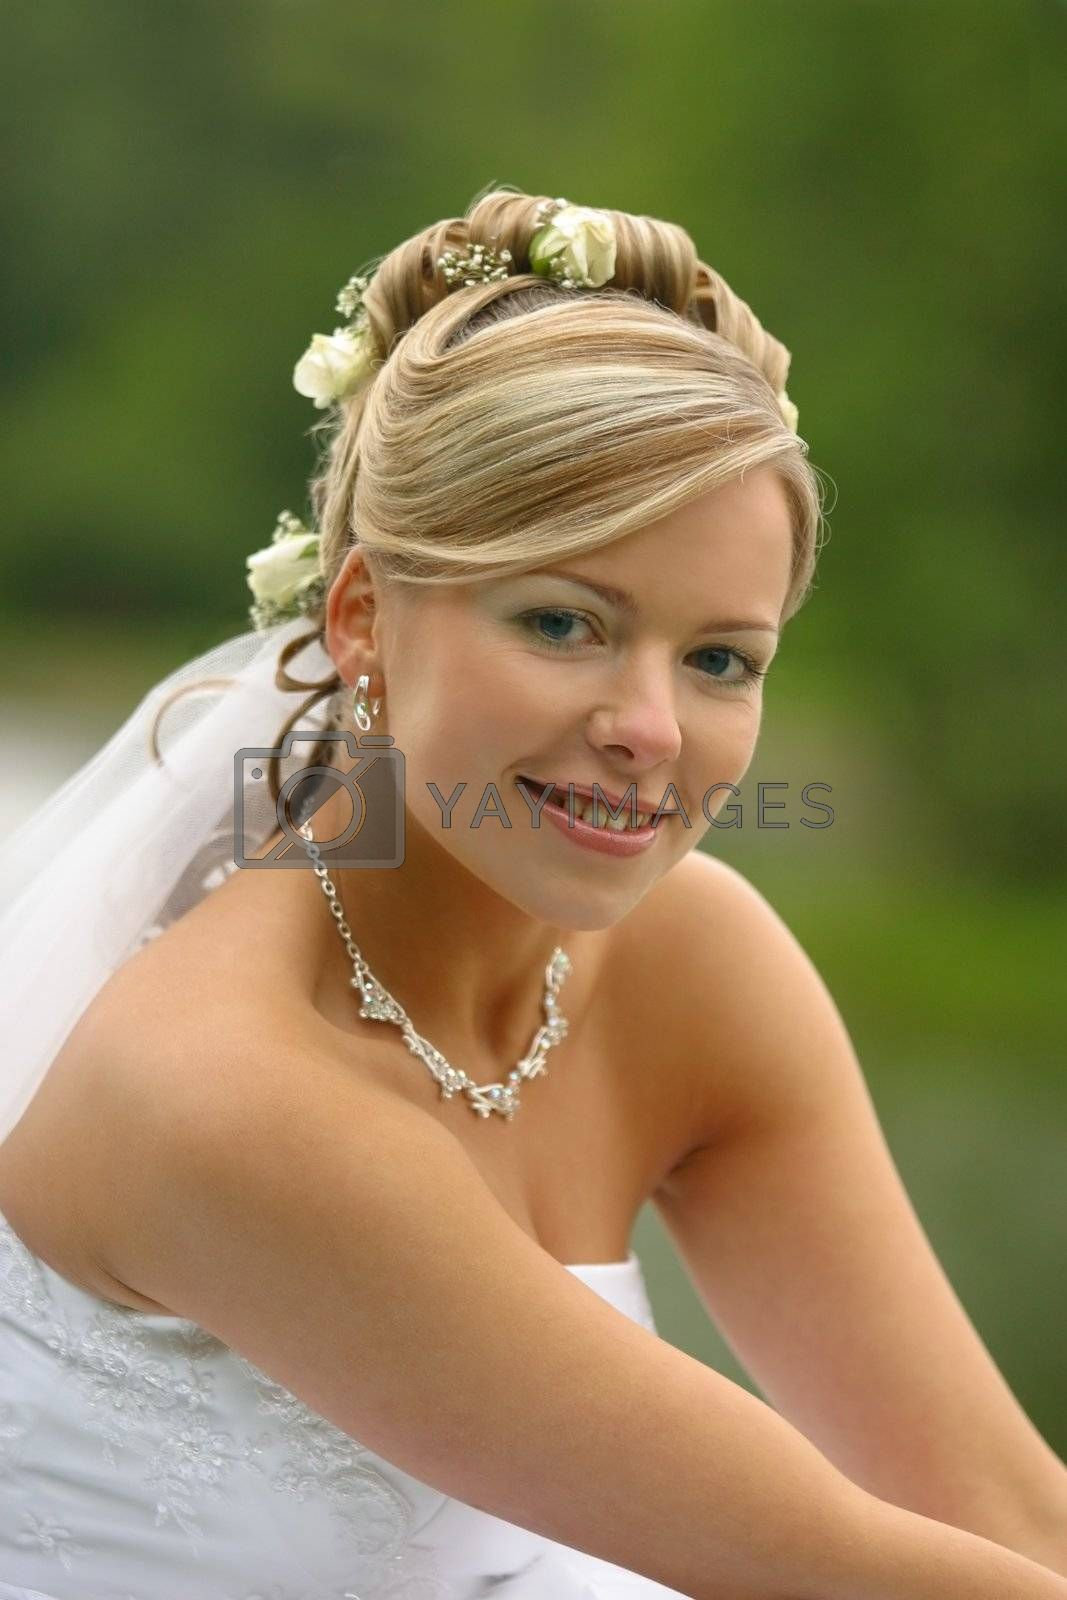 The beautiful bride on a green background